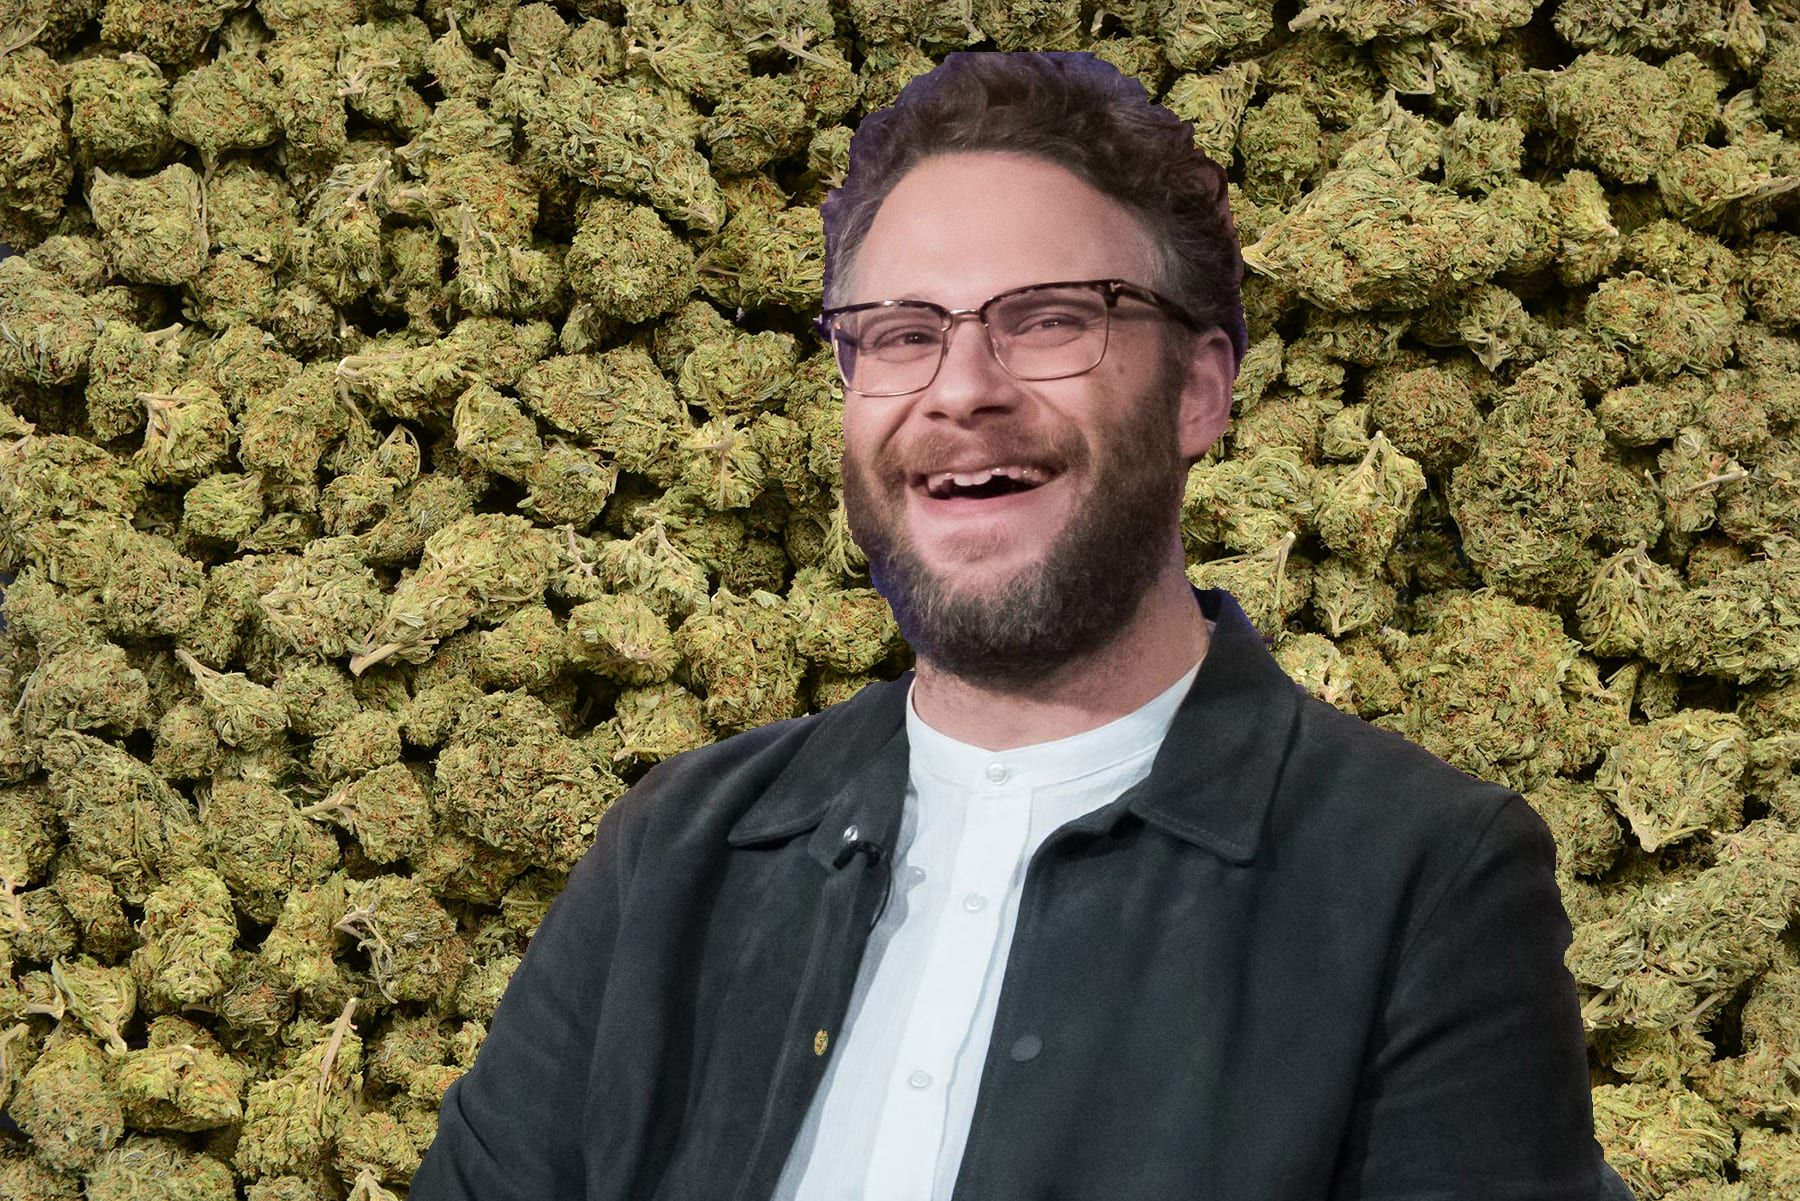 Seth Rogen's Ashtrays Make Butts Look Aesthetically Pleasing